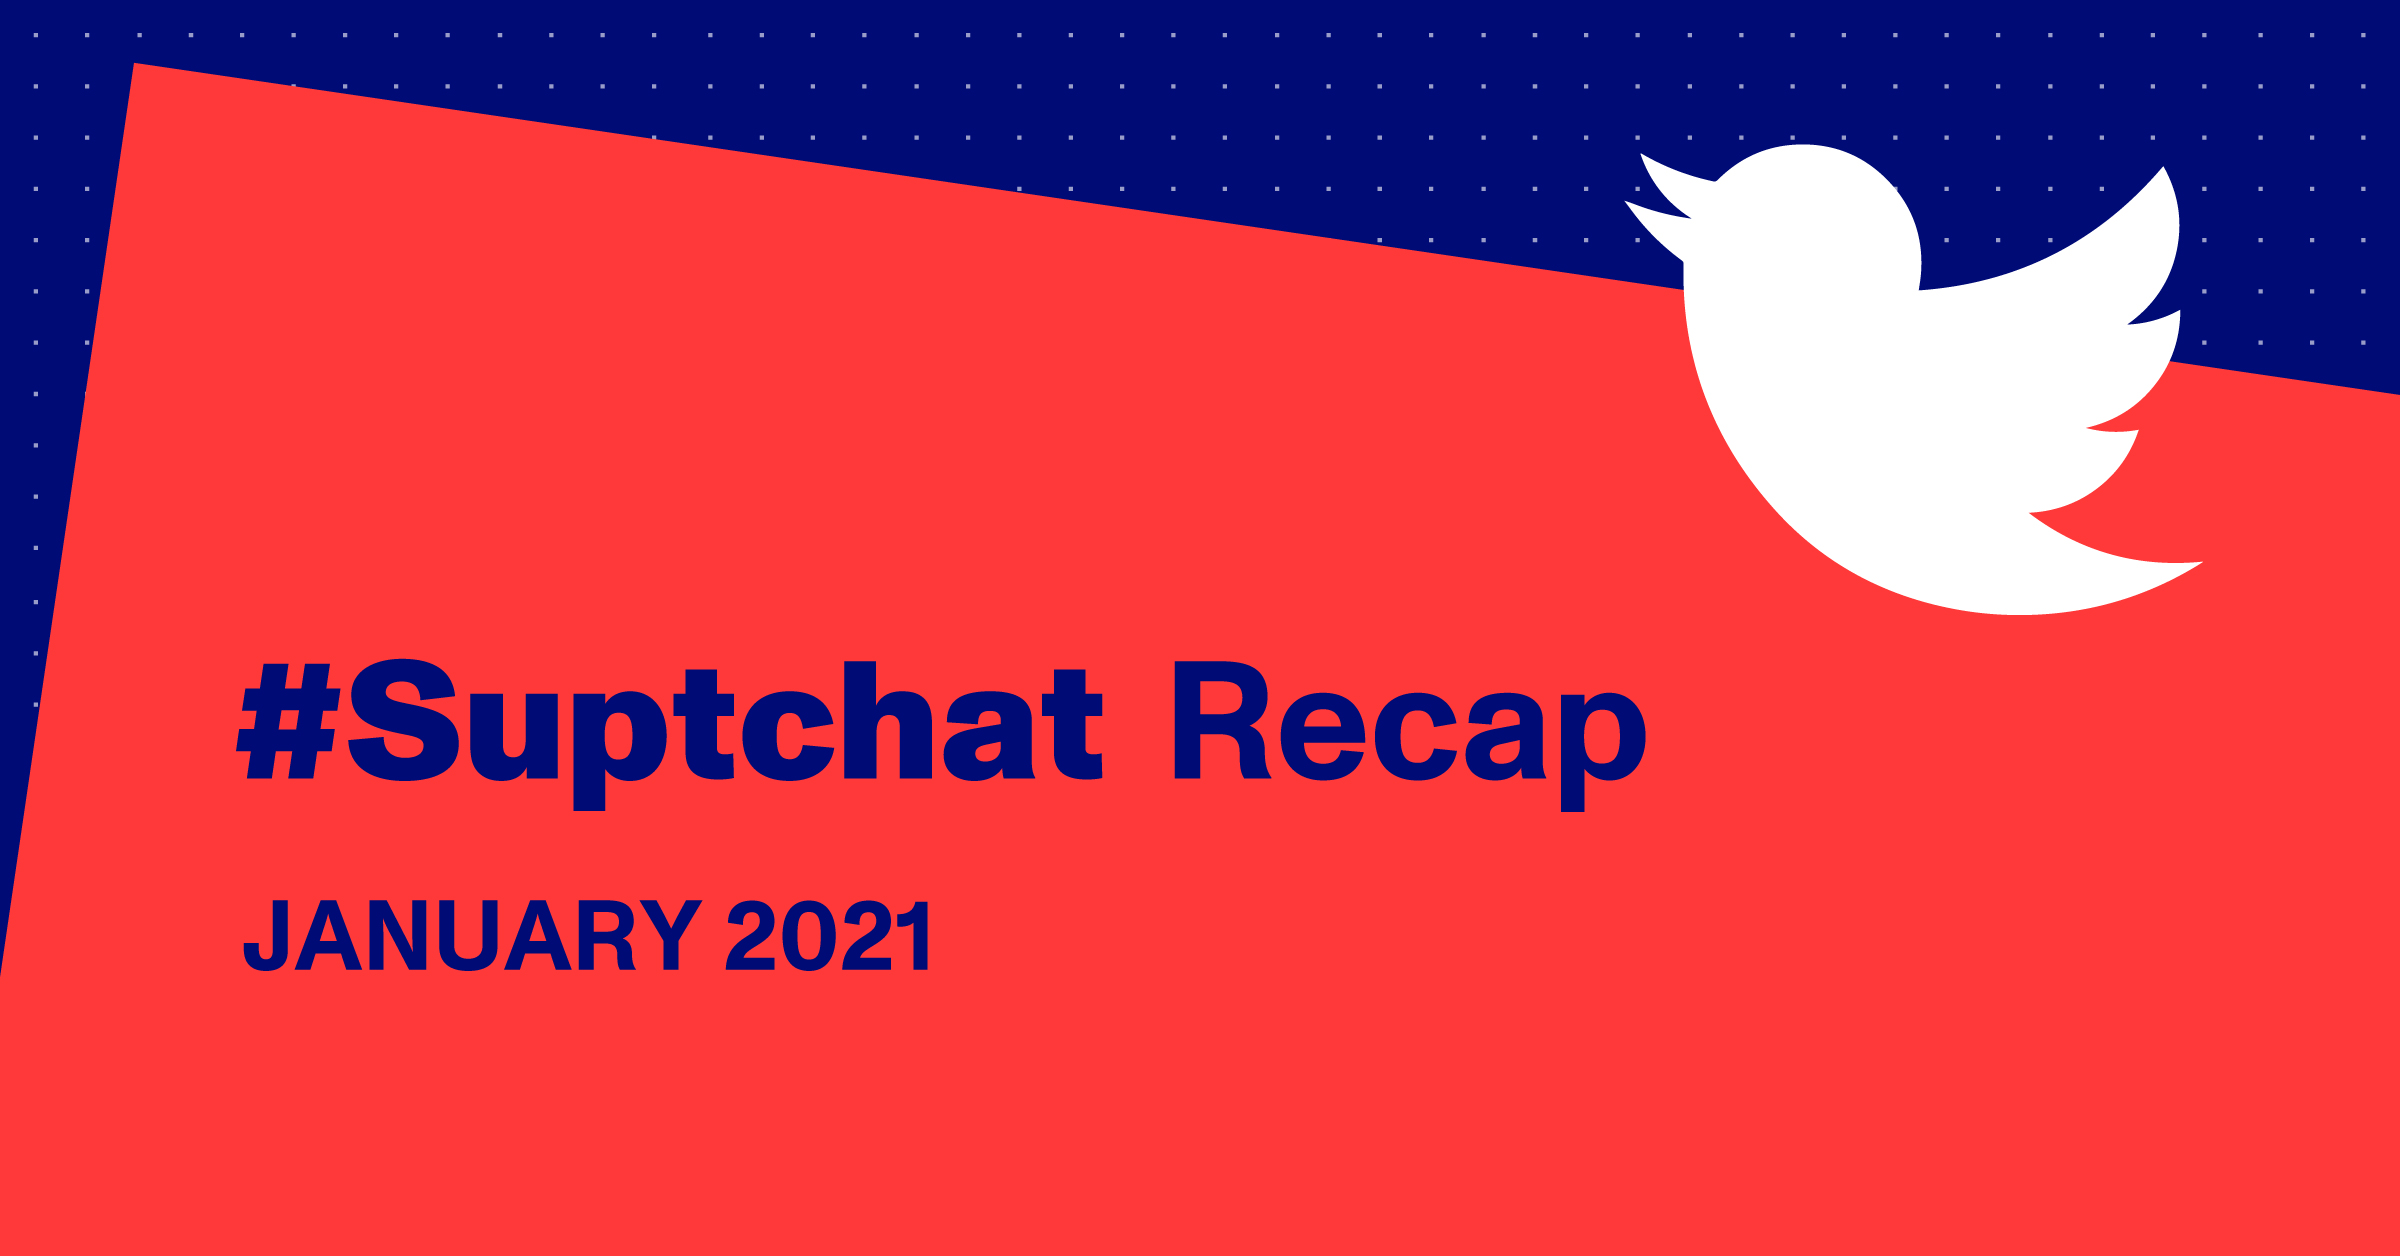 Blog Thumbnail of Suptchat Recap from January 2021